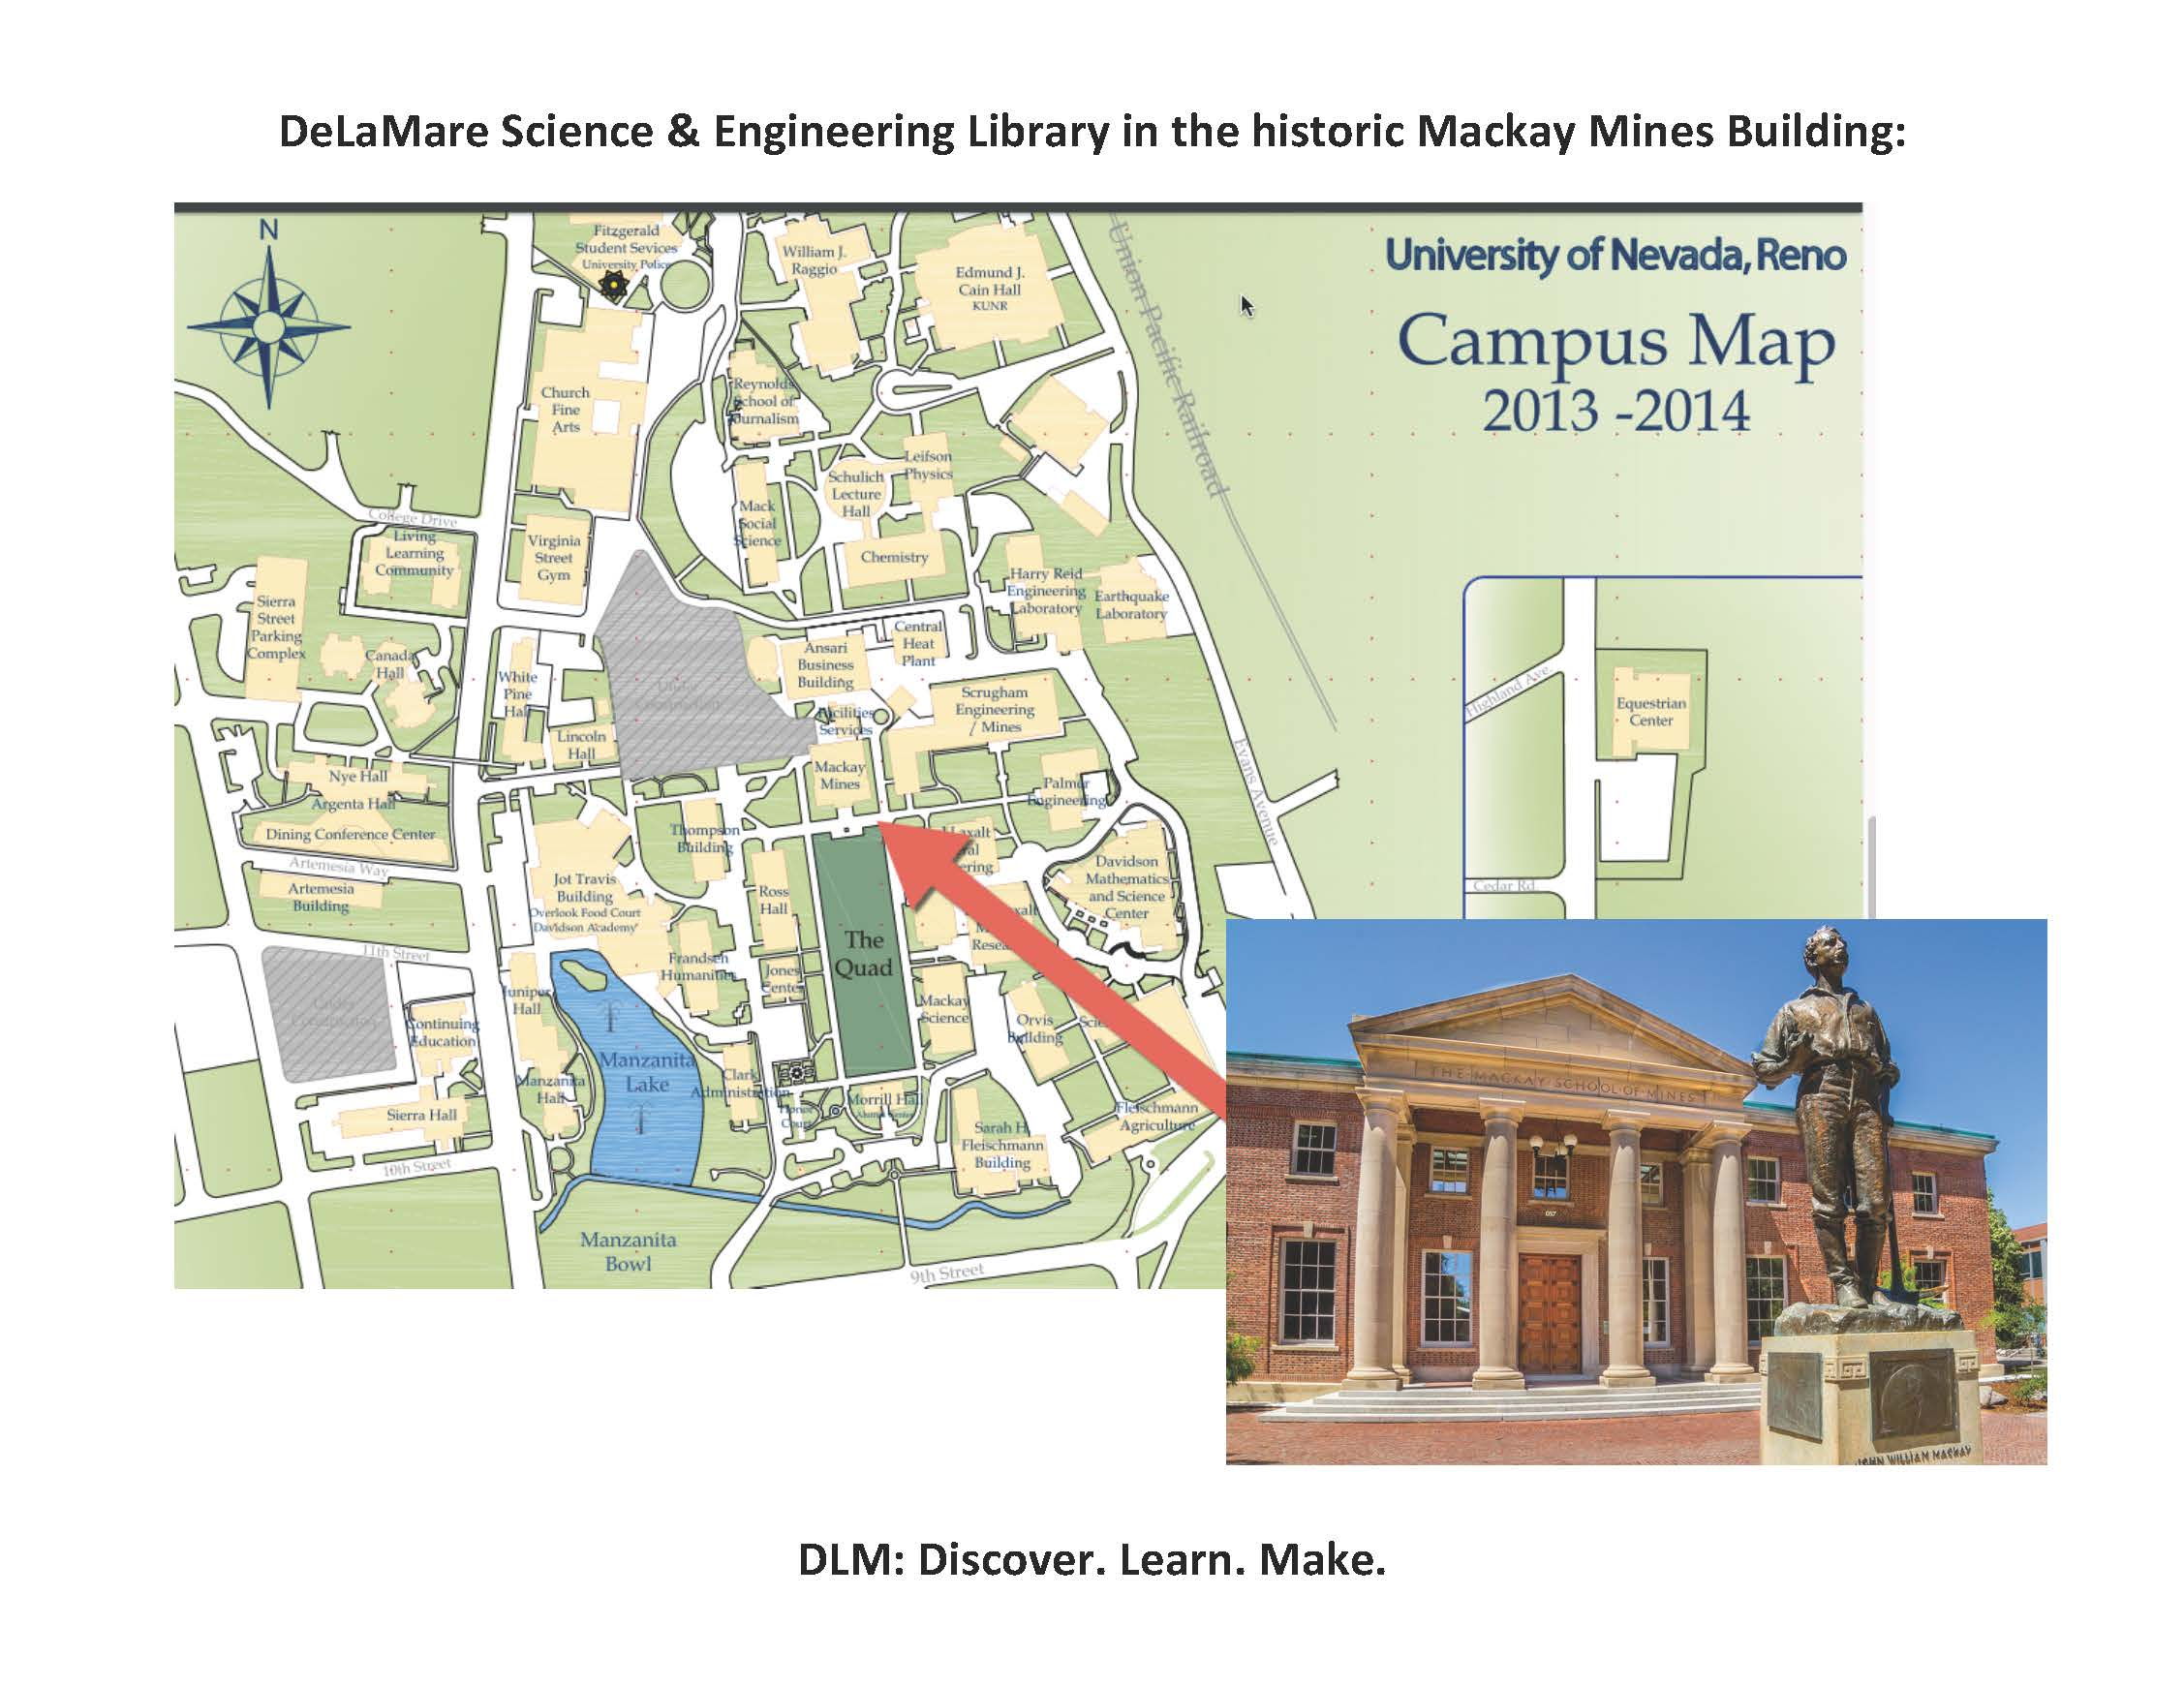 Image pointing out DeLaMare Library on the UNR Campus Map